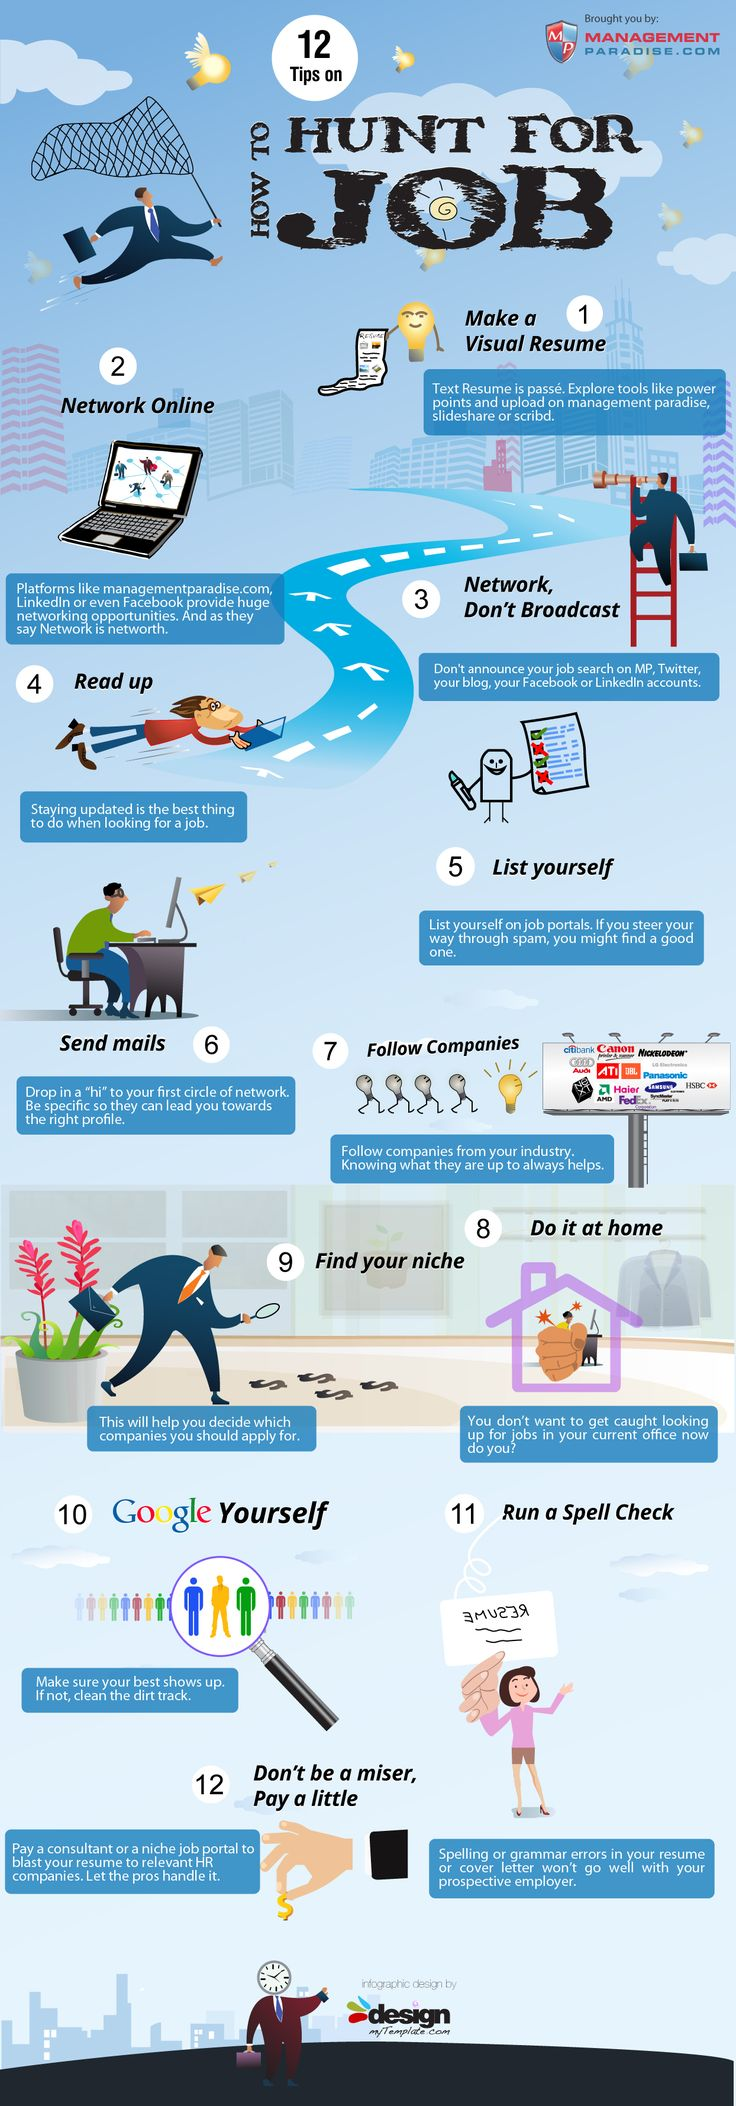 12 tips on #job hunting in a nice visual style (probably to help encourage the first point!)